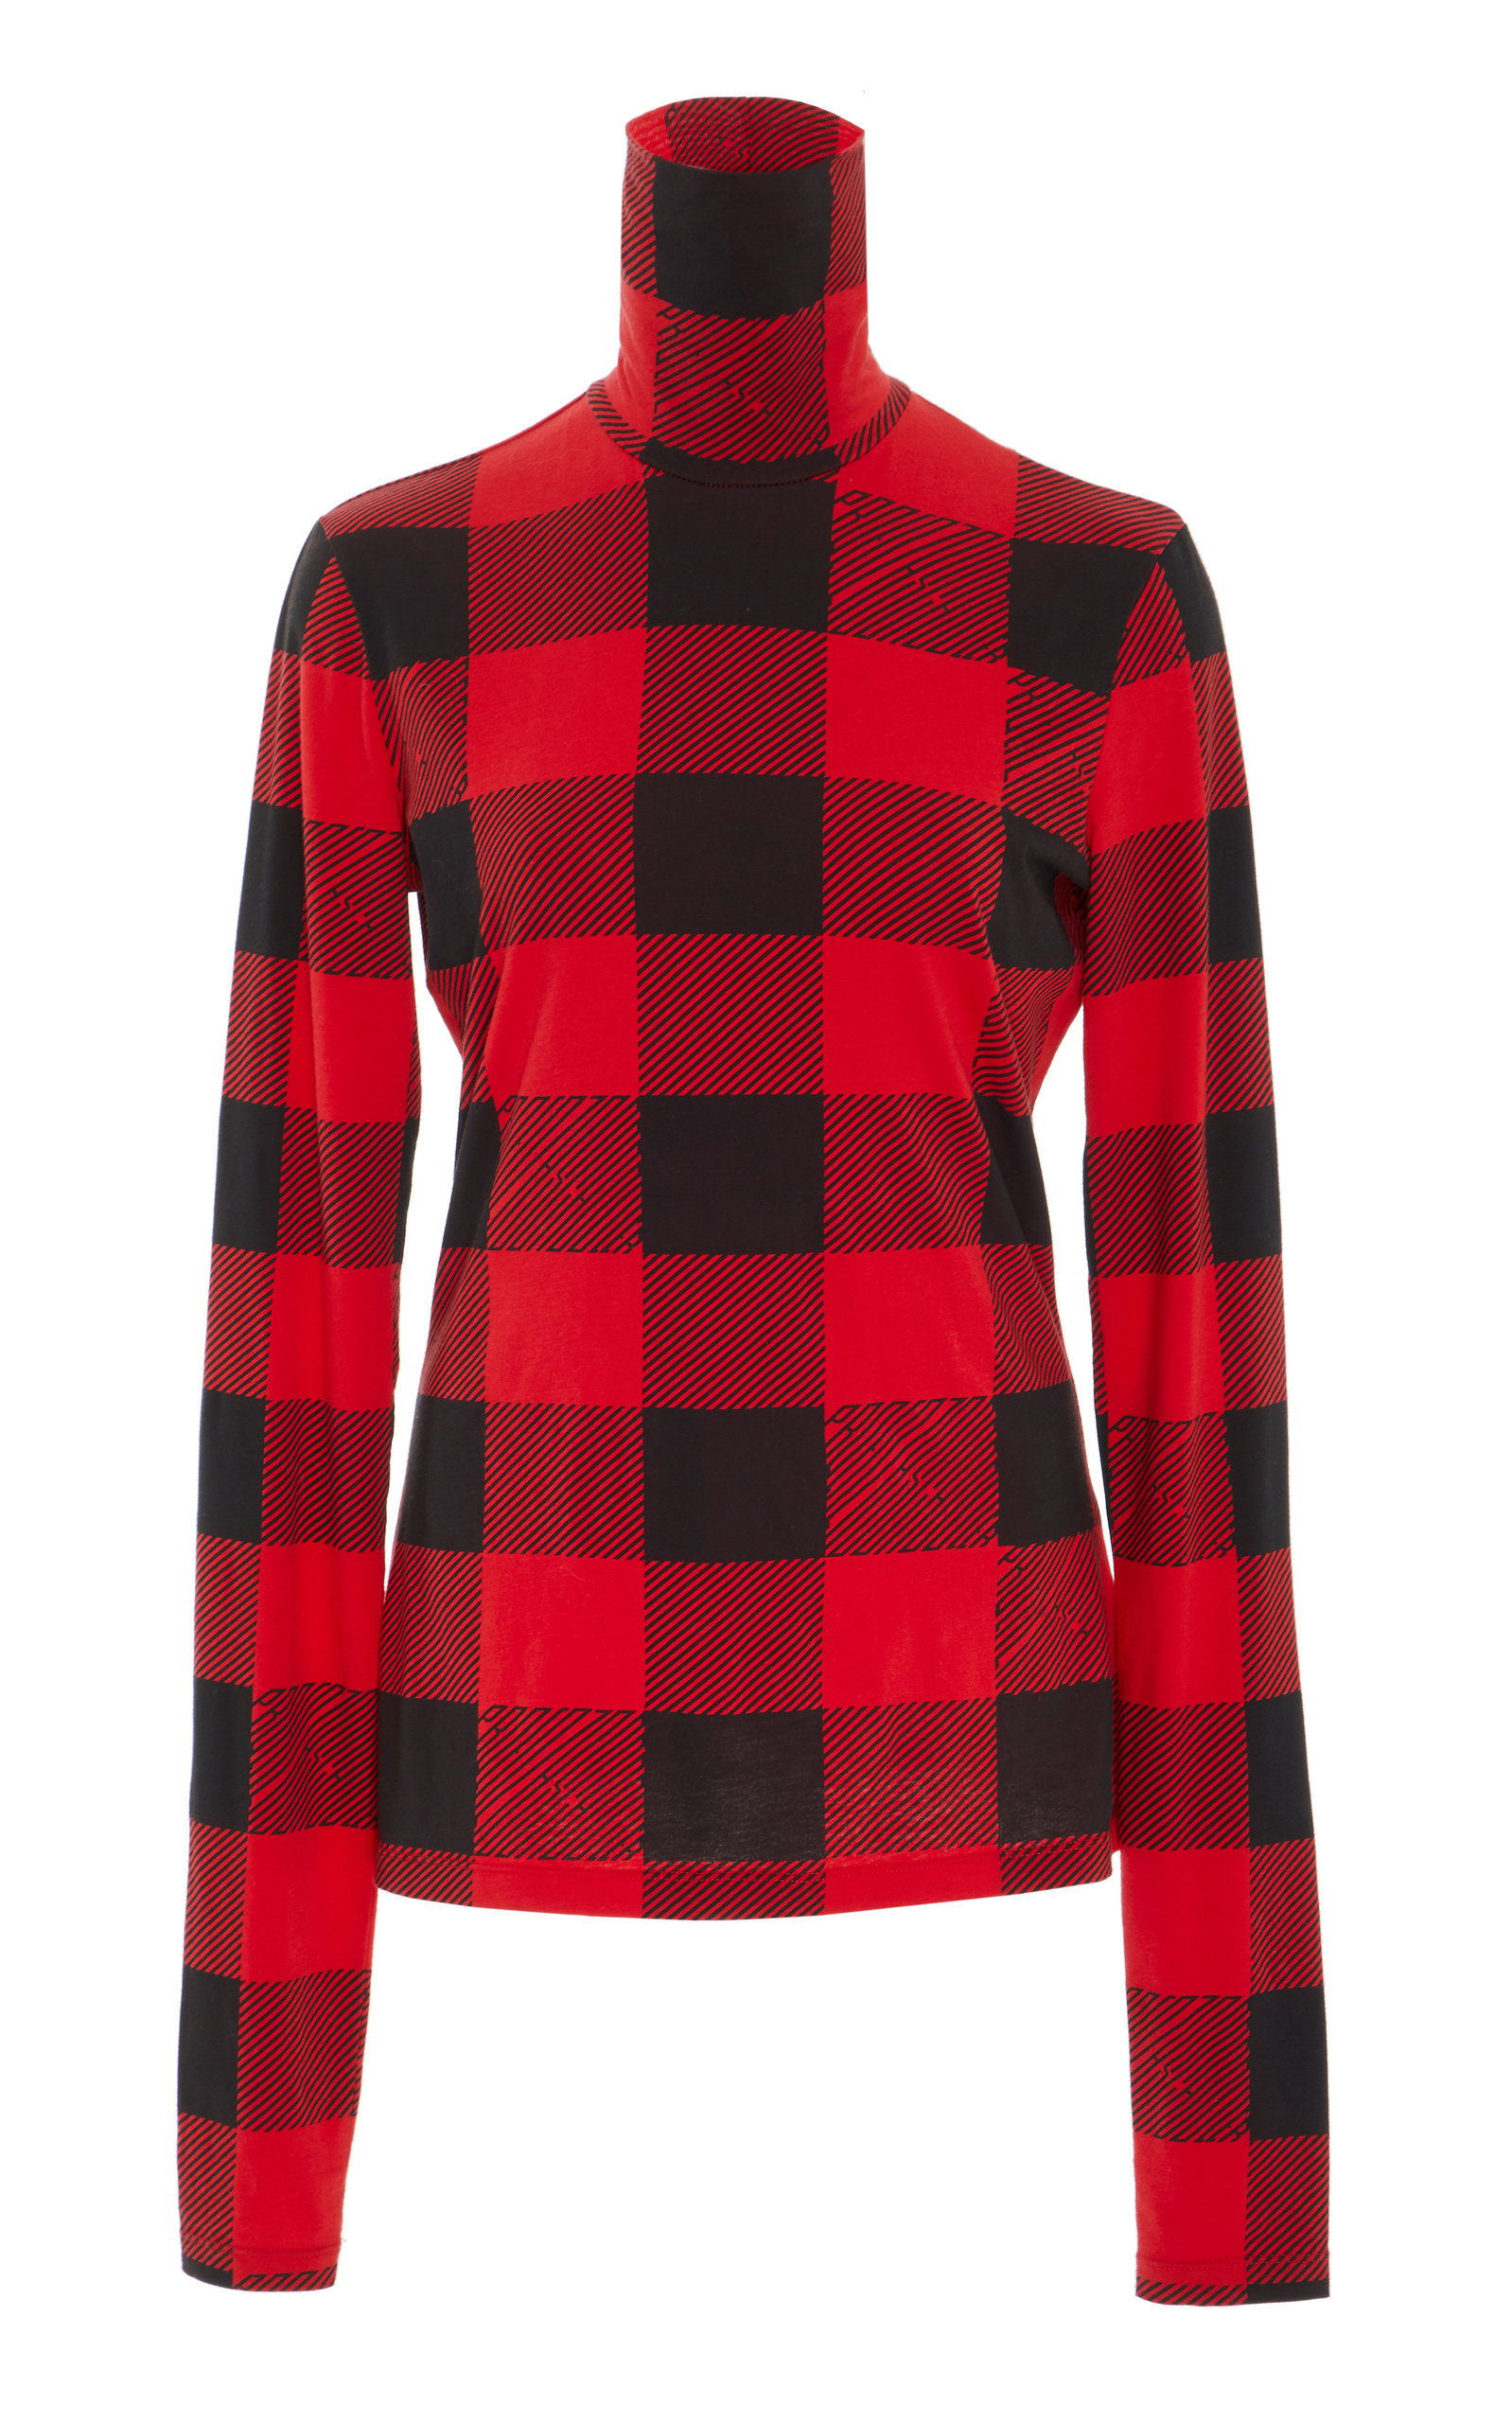 Pswl Checked Stretch-Cotton Jersey Turtleneck Top, Plaid